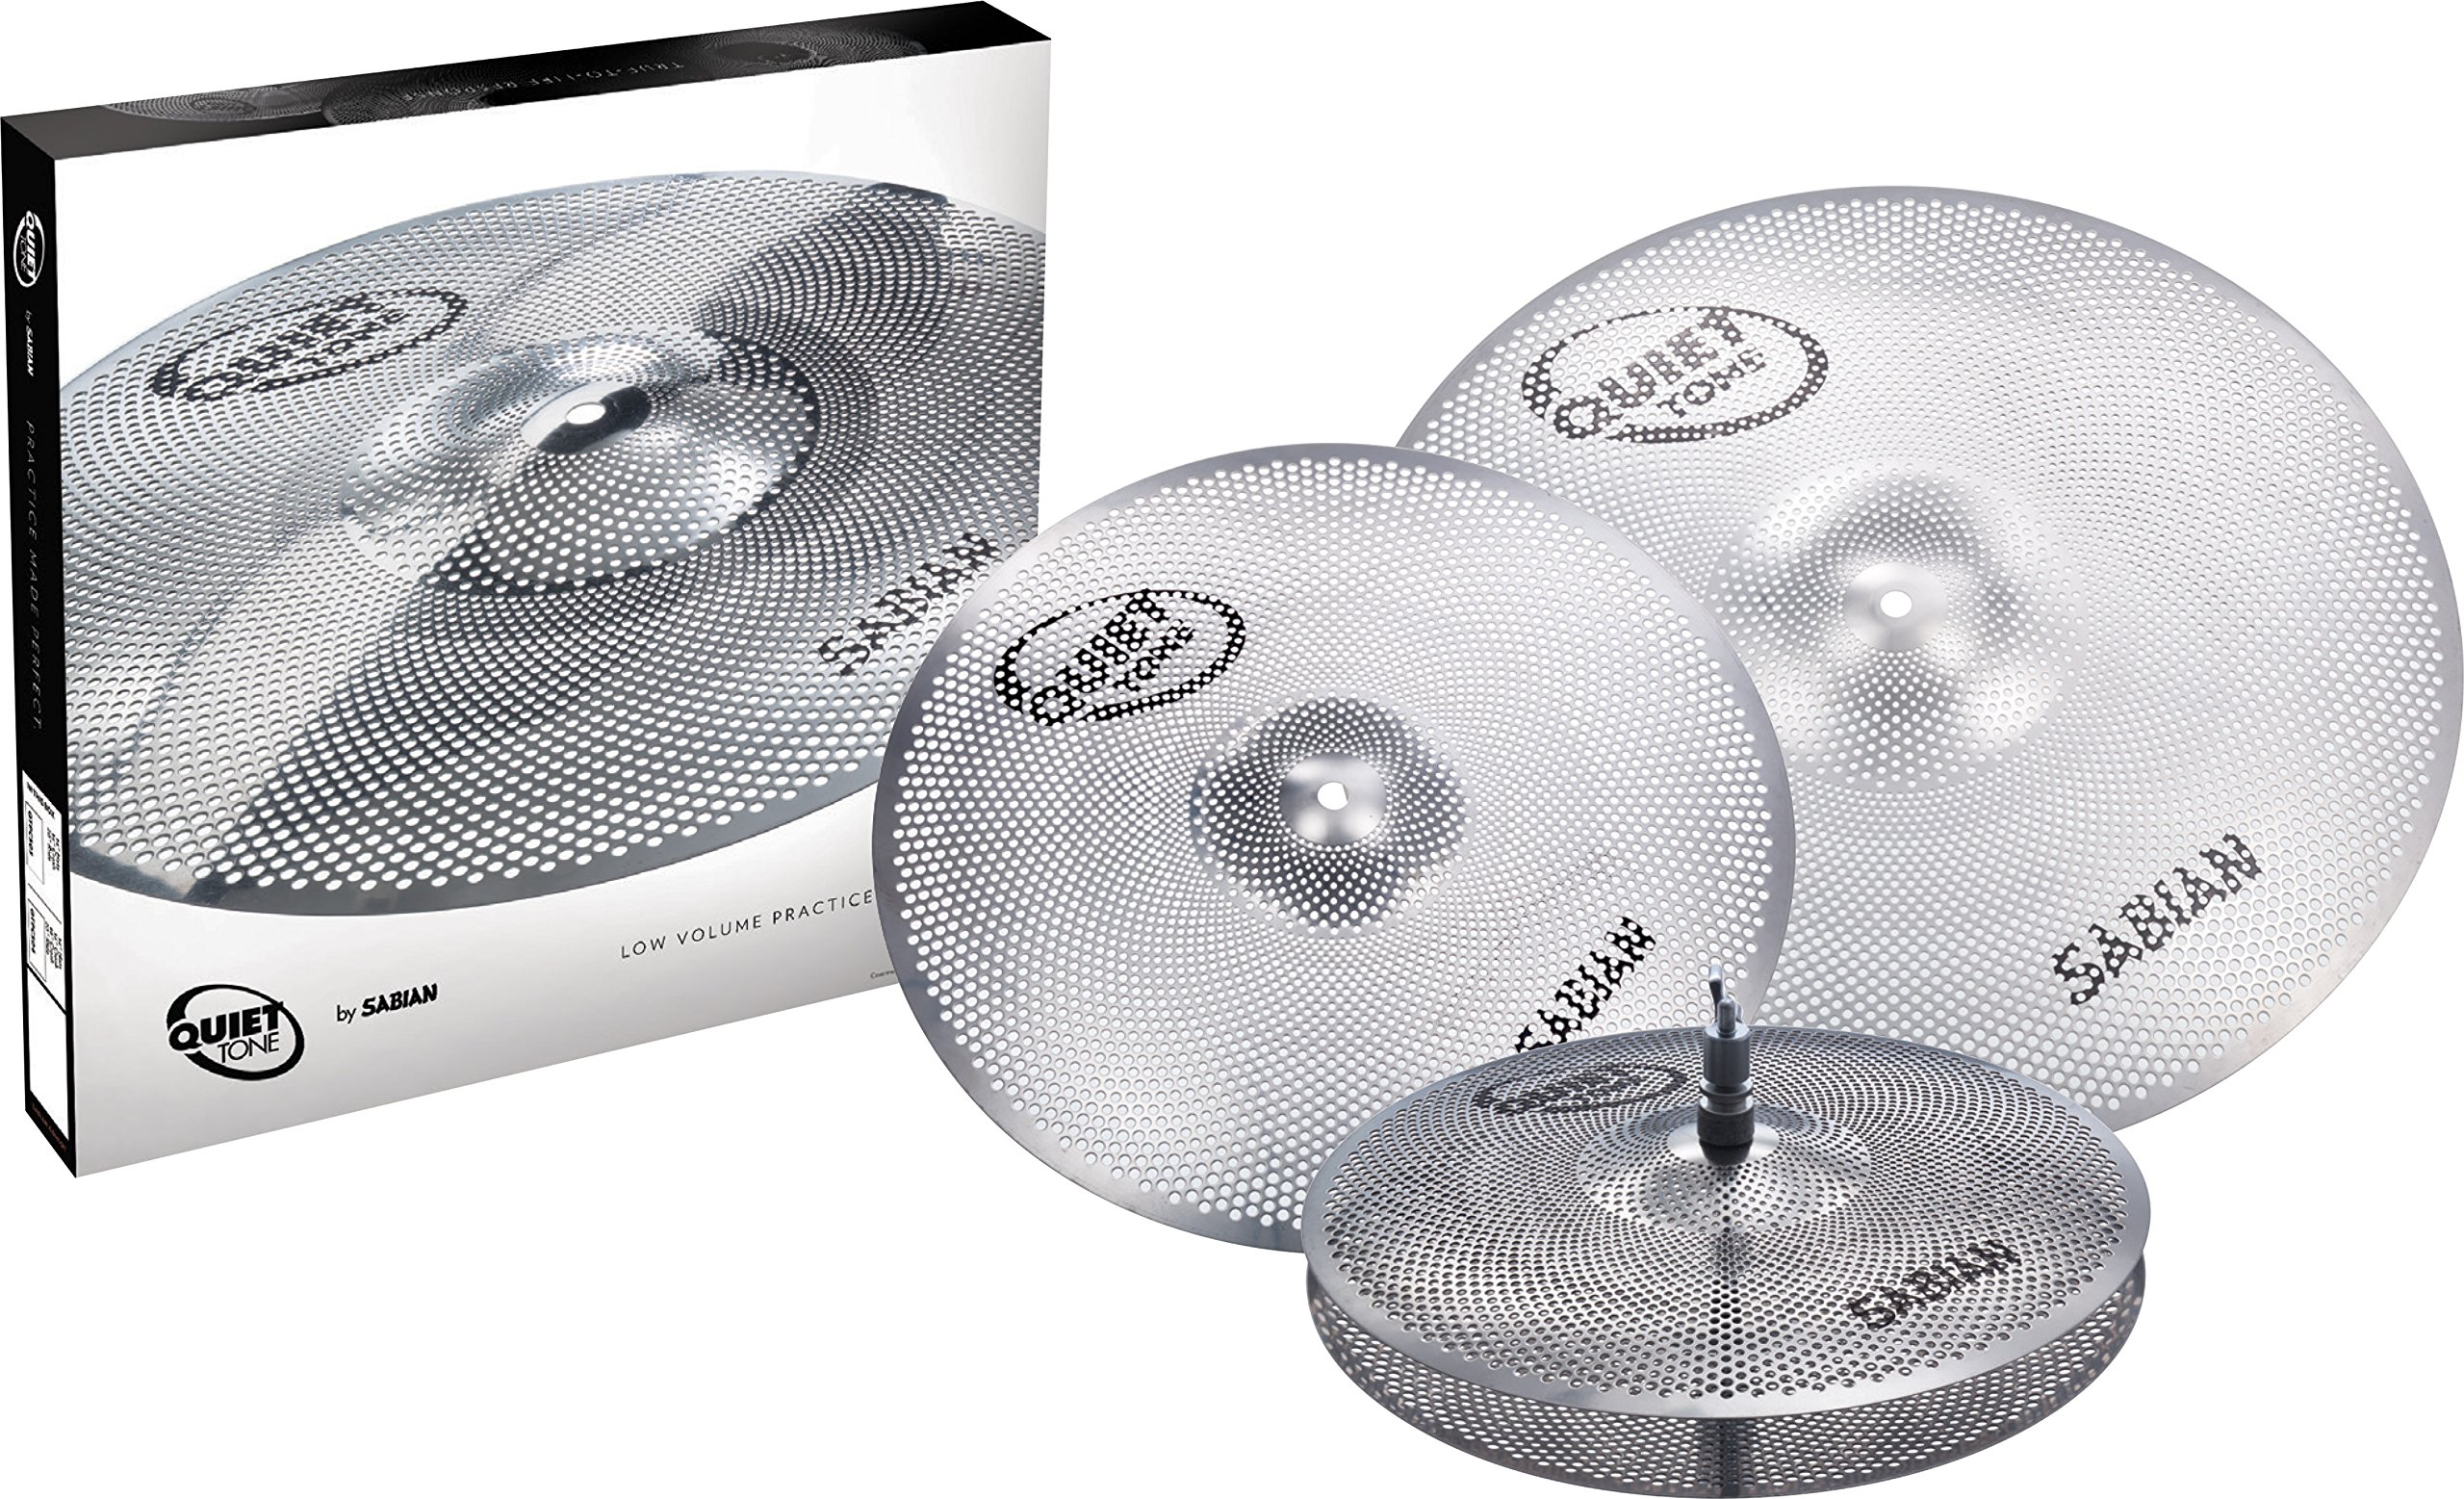 Sabian Cymbal Variety Package (QTPC502)